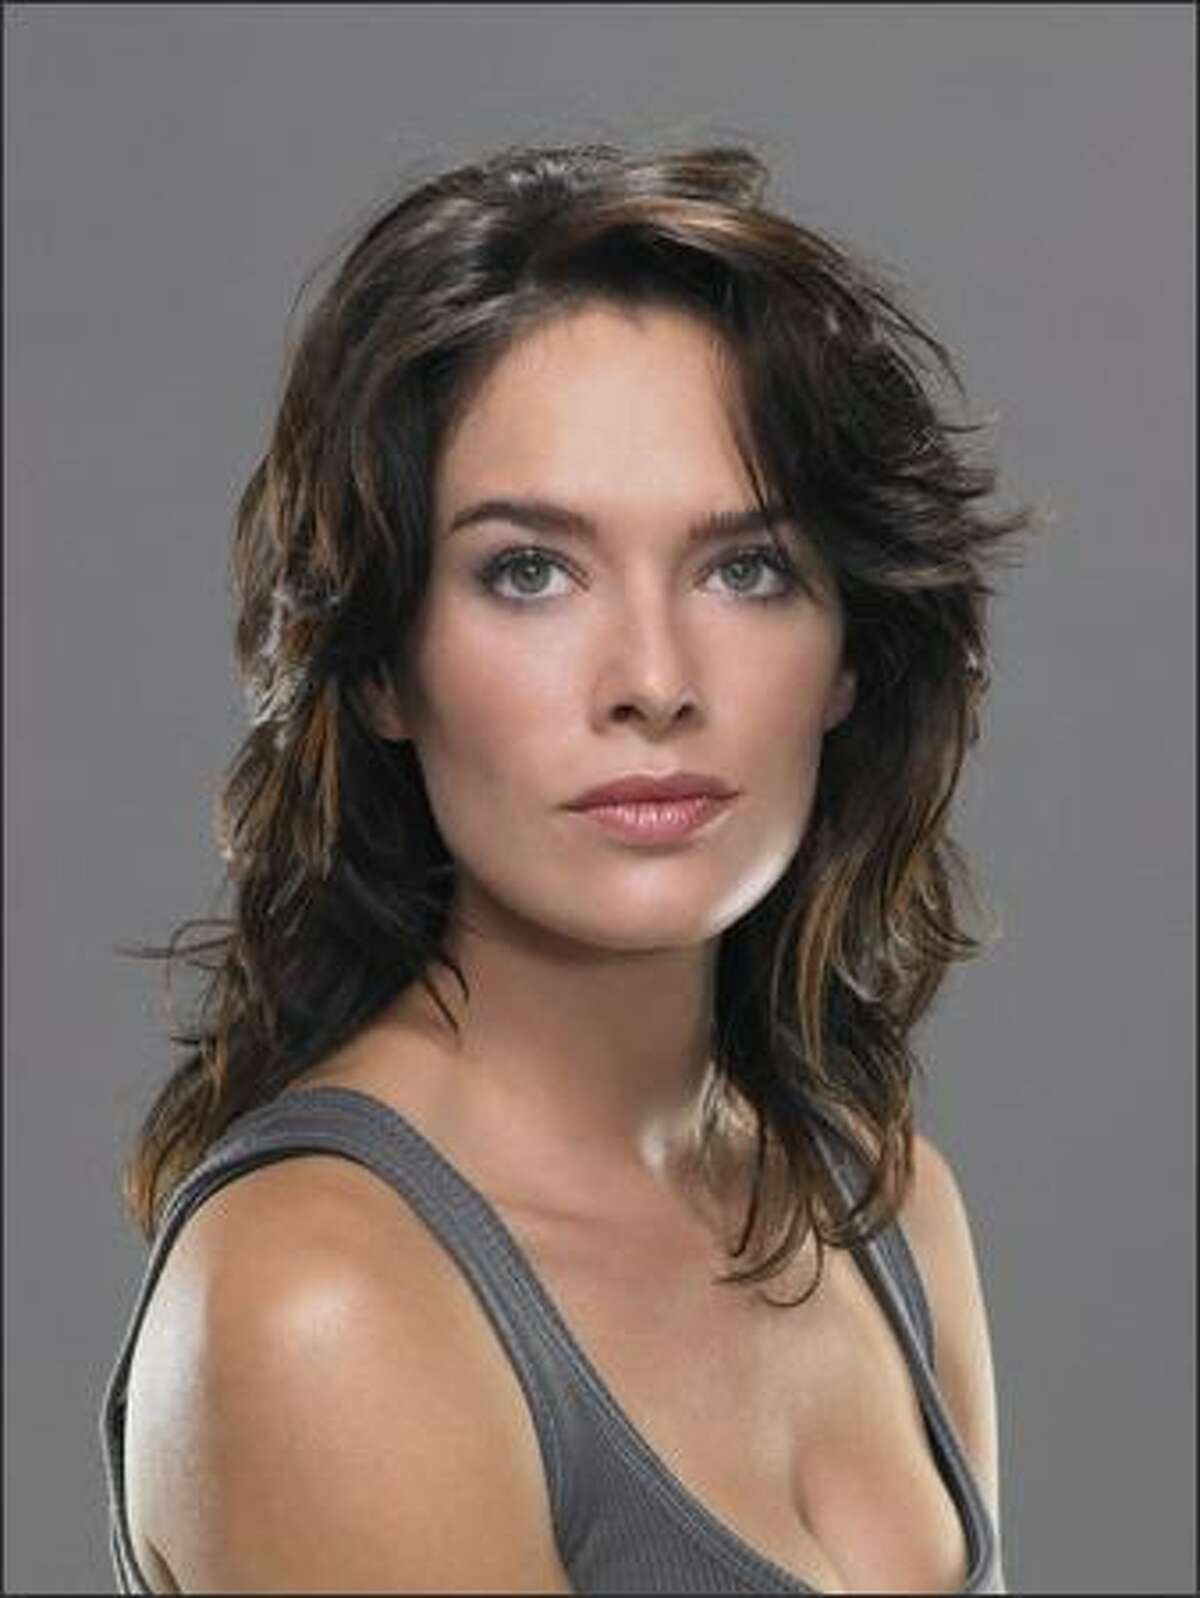 Sarah Connor (Lena Headey) finds herself in a dangerous and complicated new world in the new drama